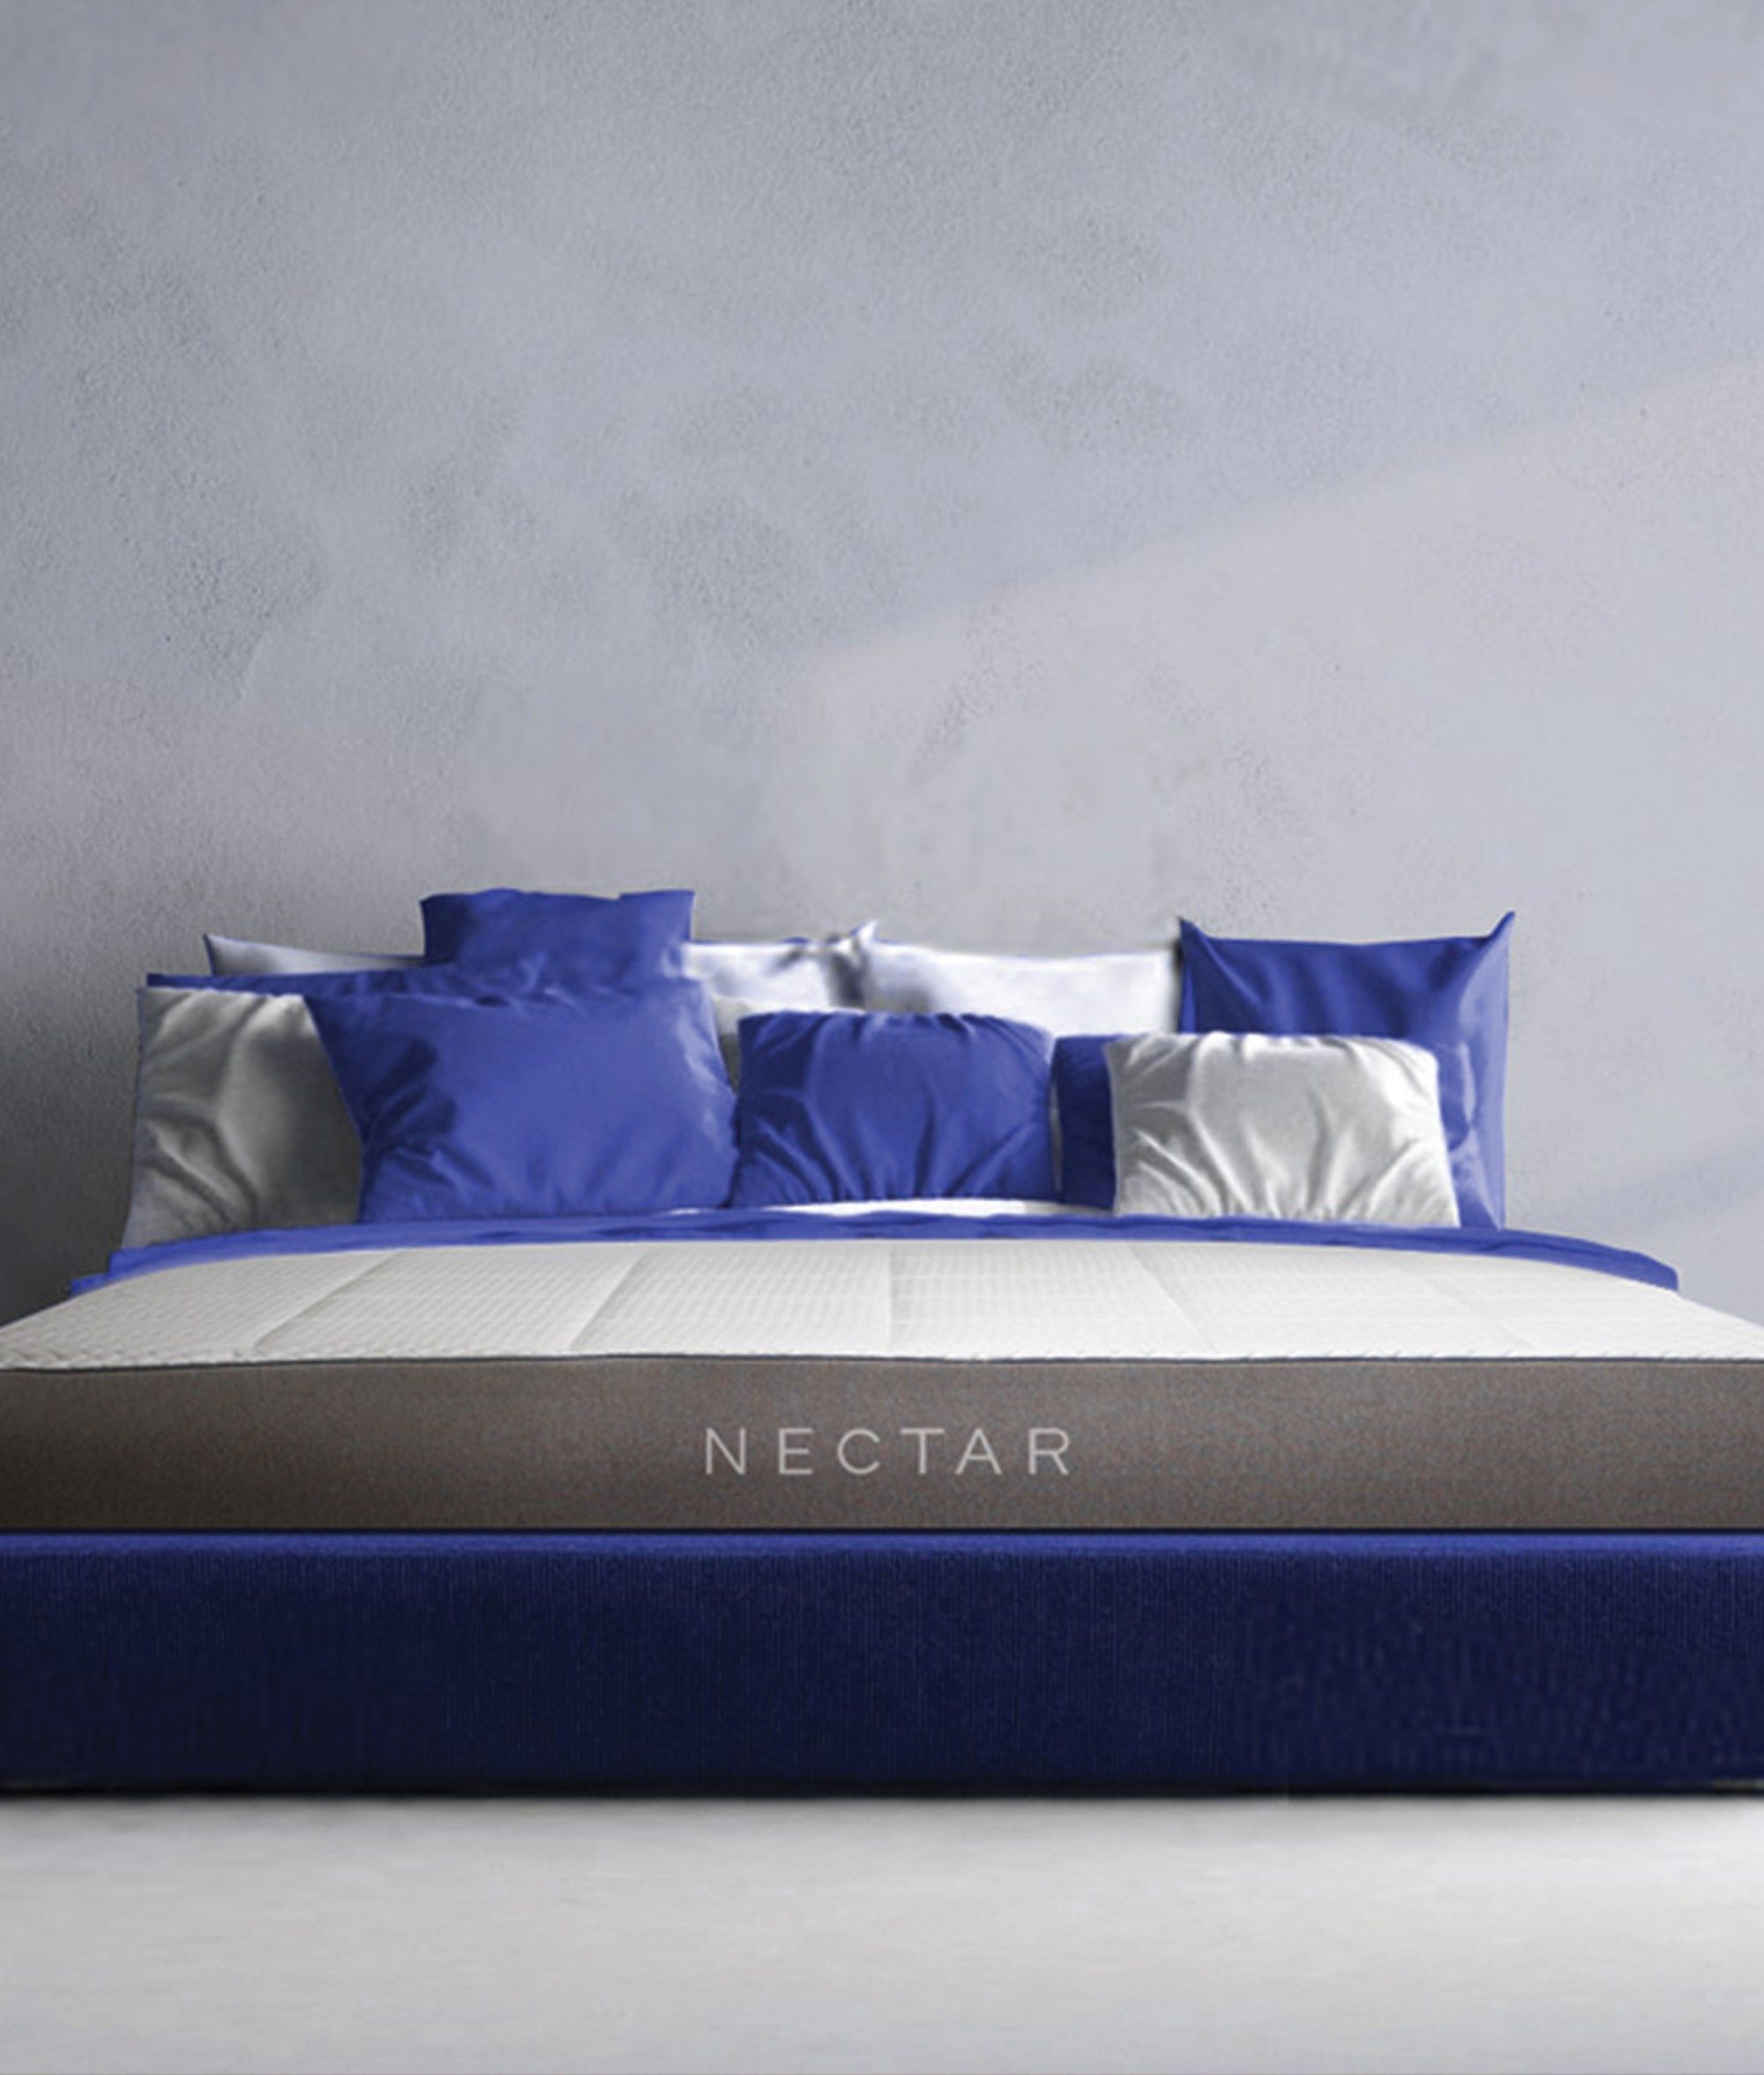 The Nectar Mattress Is Extremely Comfortable And Find That We Are Definitely Sleeping Better Then We Had Been On Our Old One Mattress Sleep Mattress Cool Beds